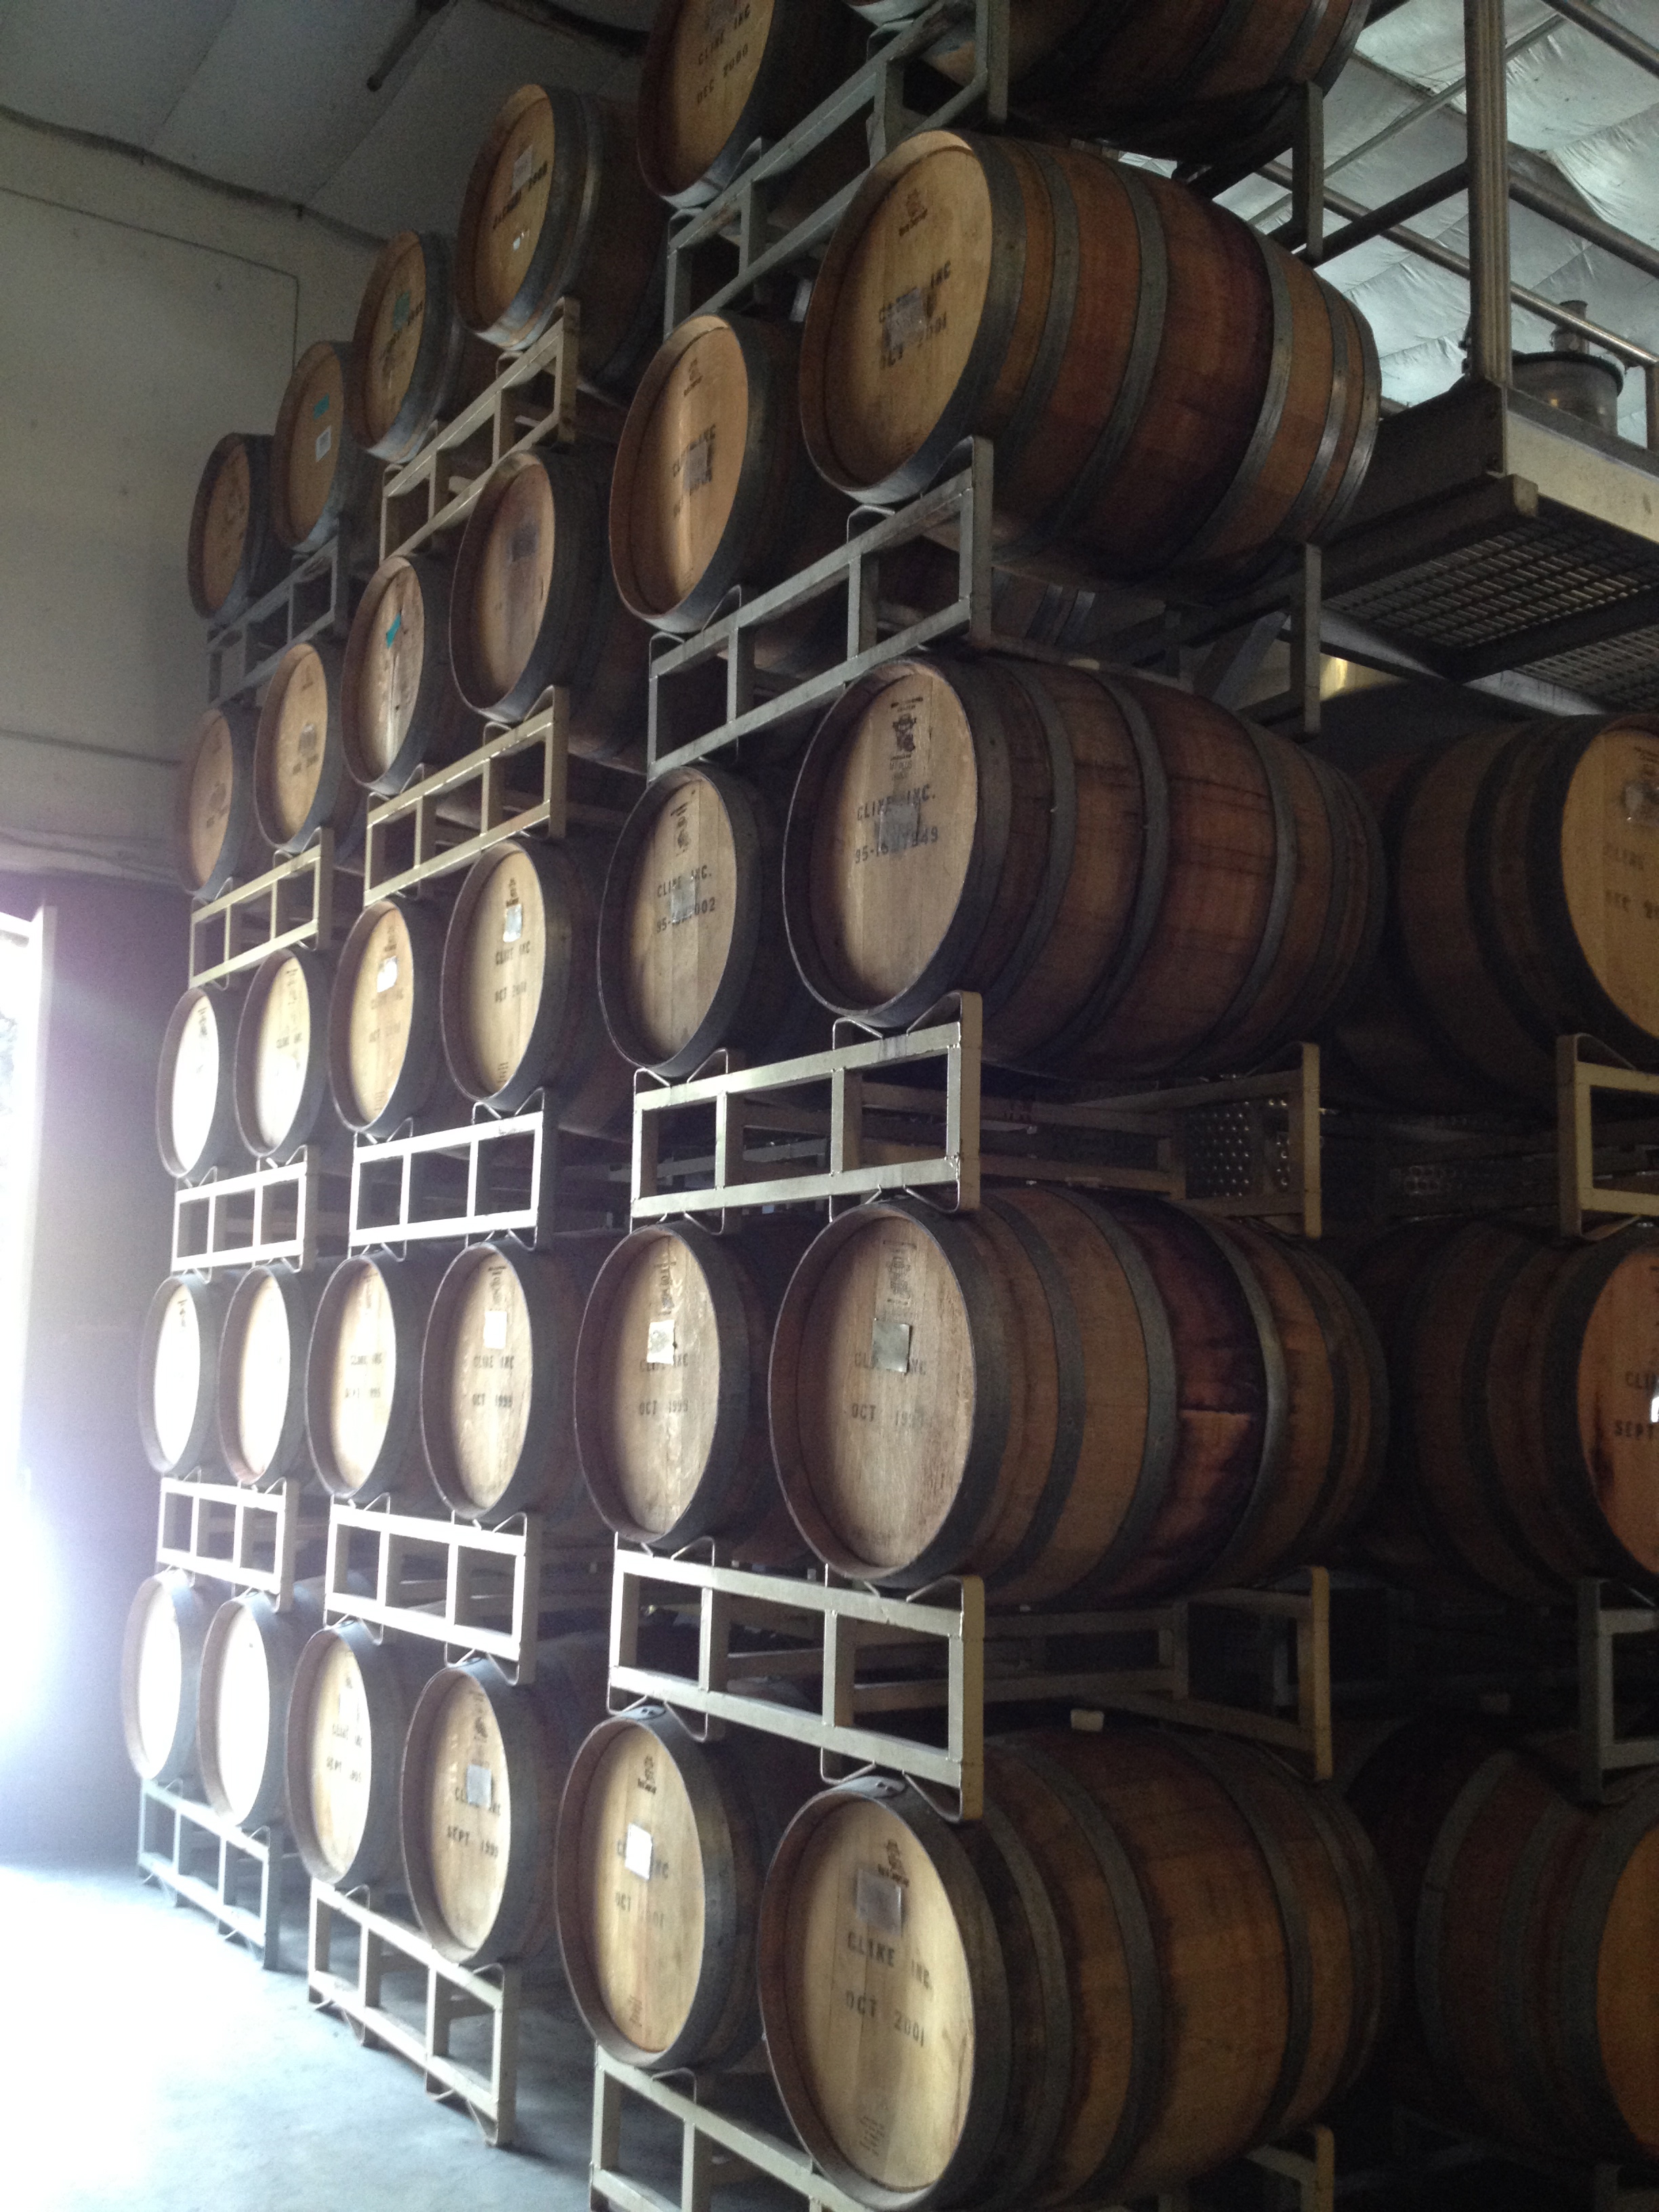 Barrels by the entry, barrels every where!